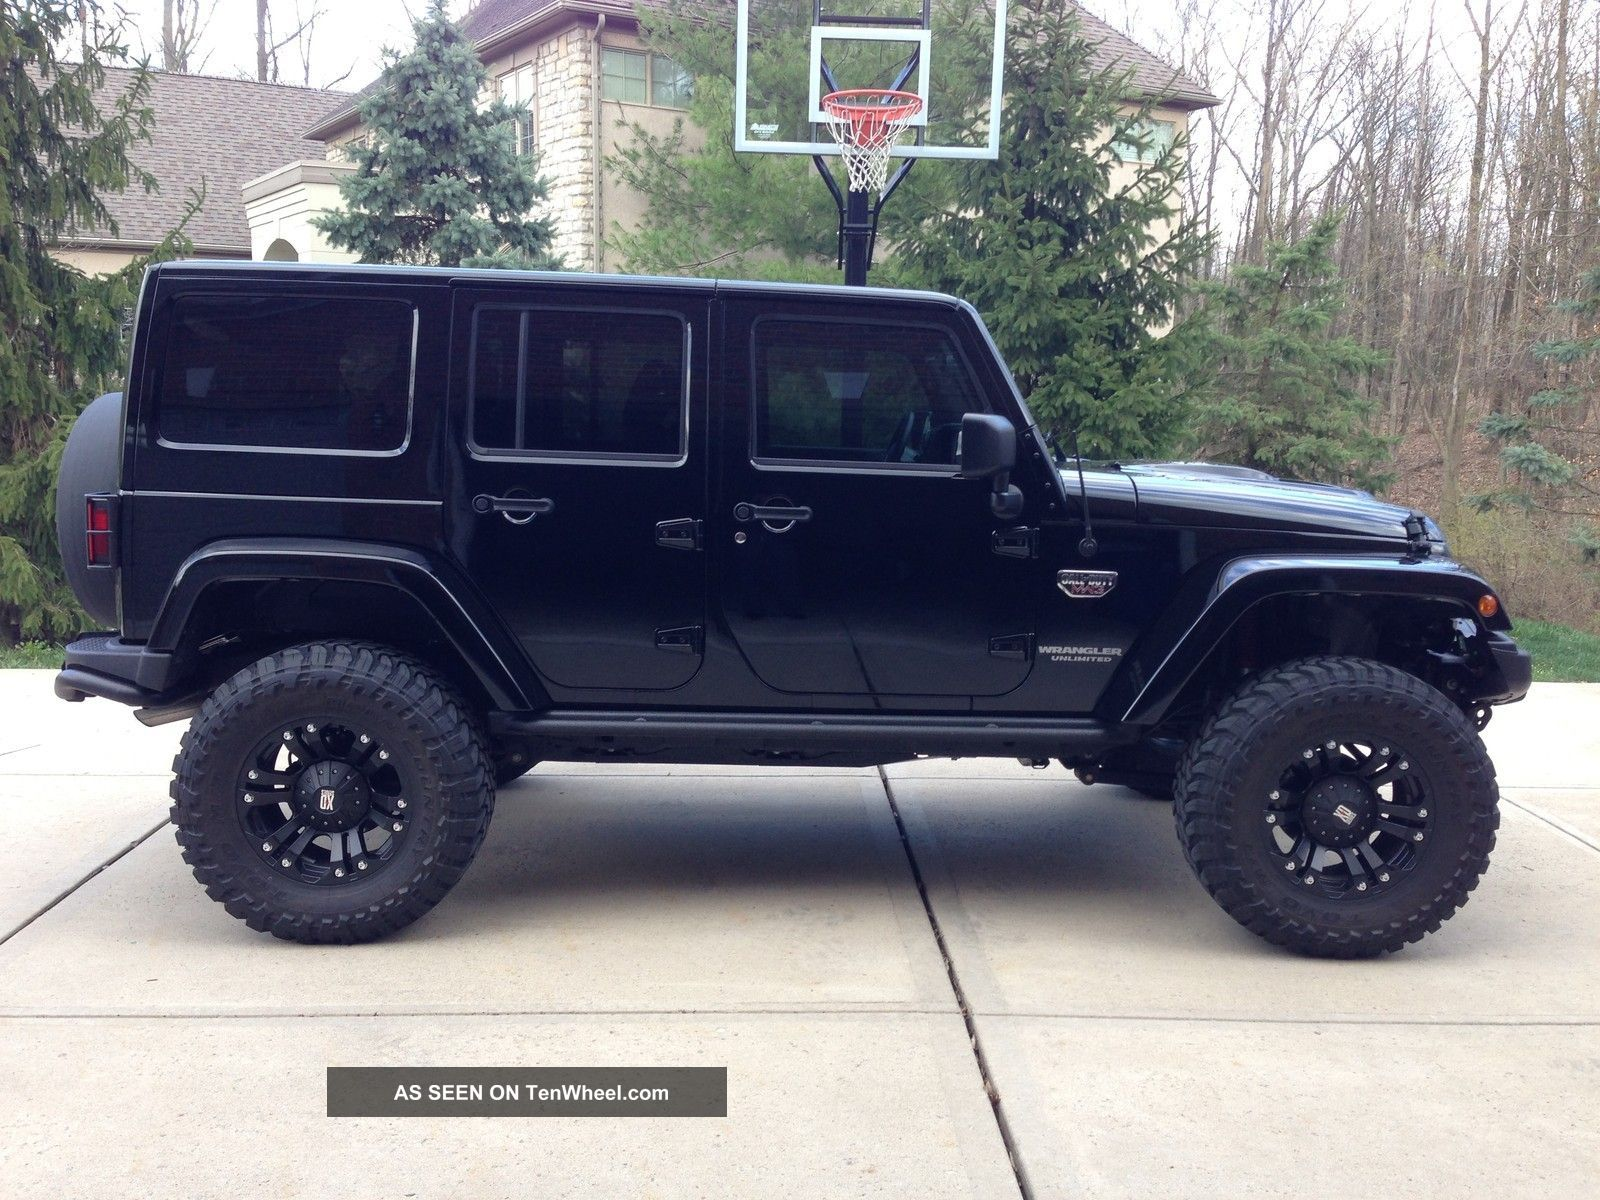 Black Jeep Wrangler 4 Door. dream car 4 door jeep